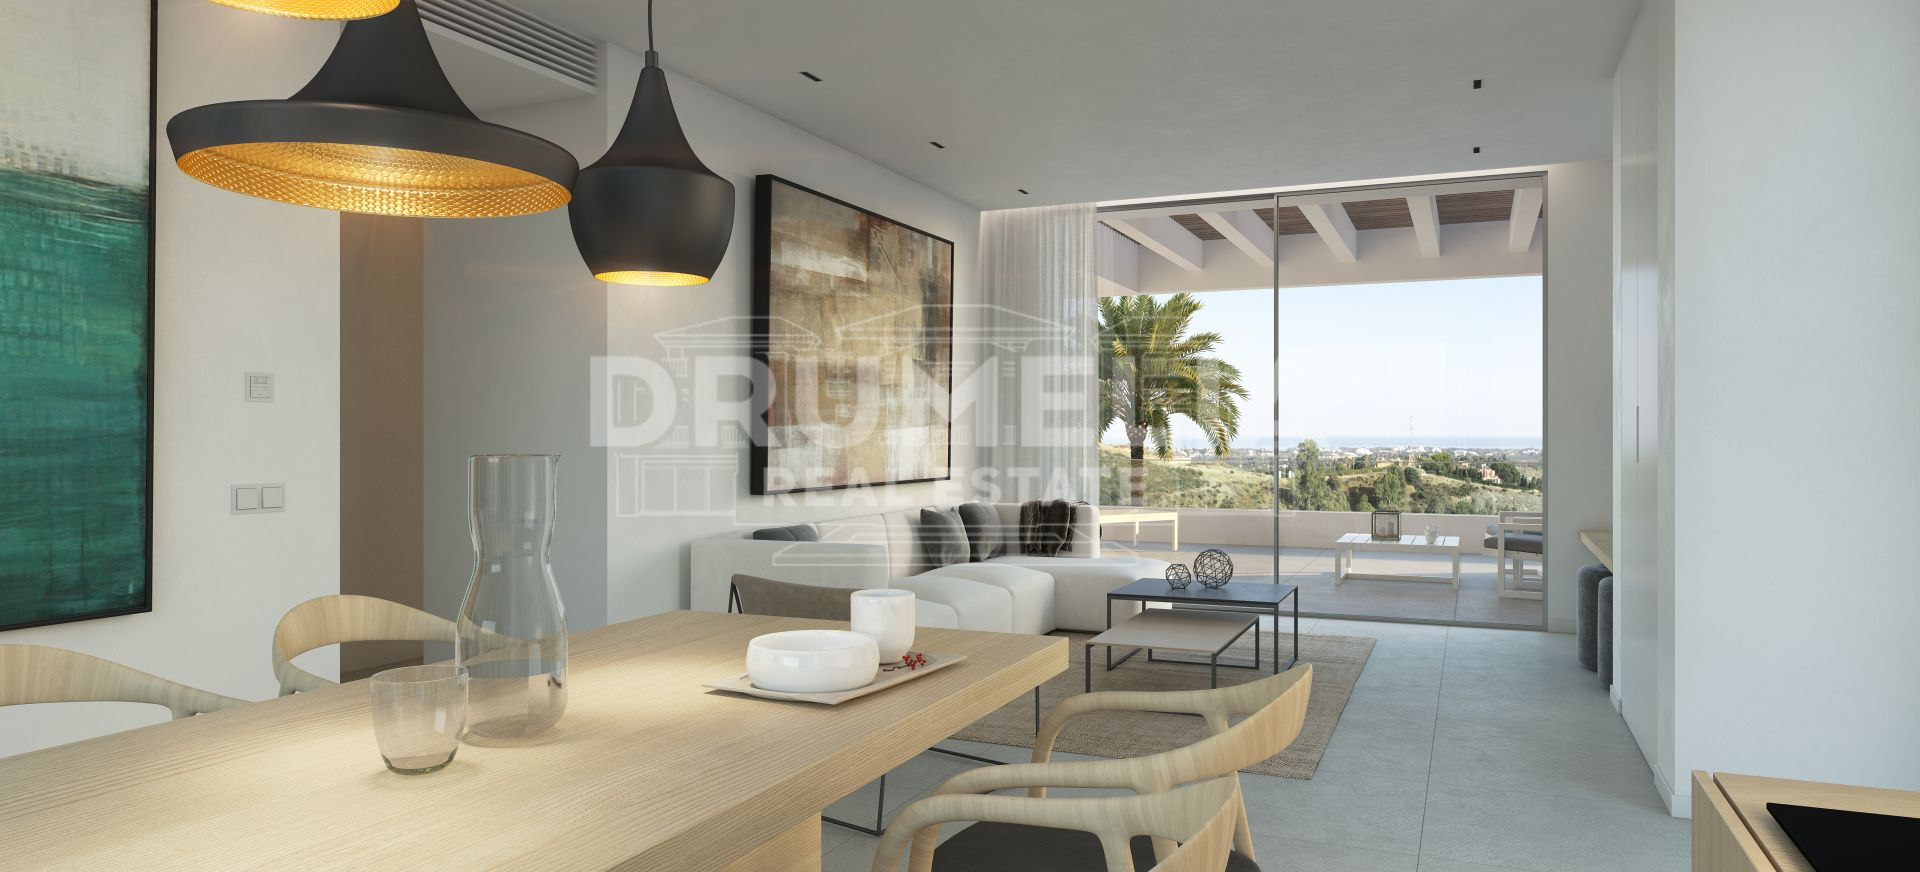 Benahavis, Stunning New Modern Luxury Penthouse, Benahavis